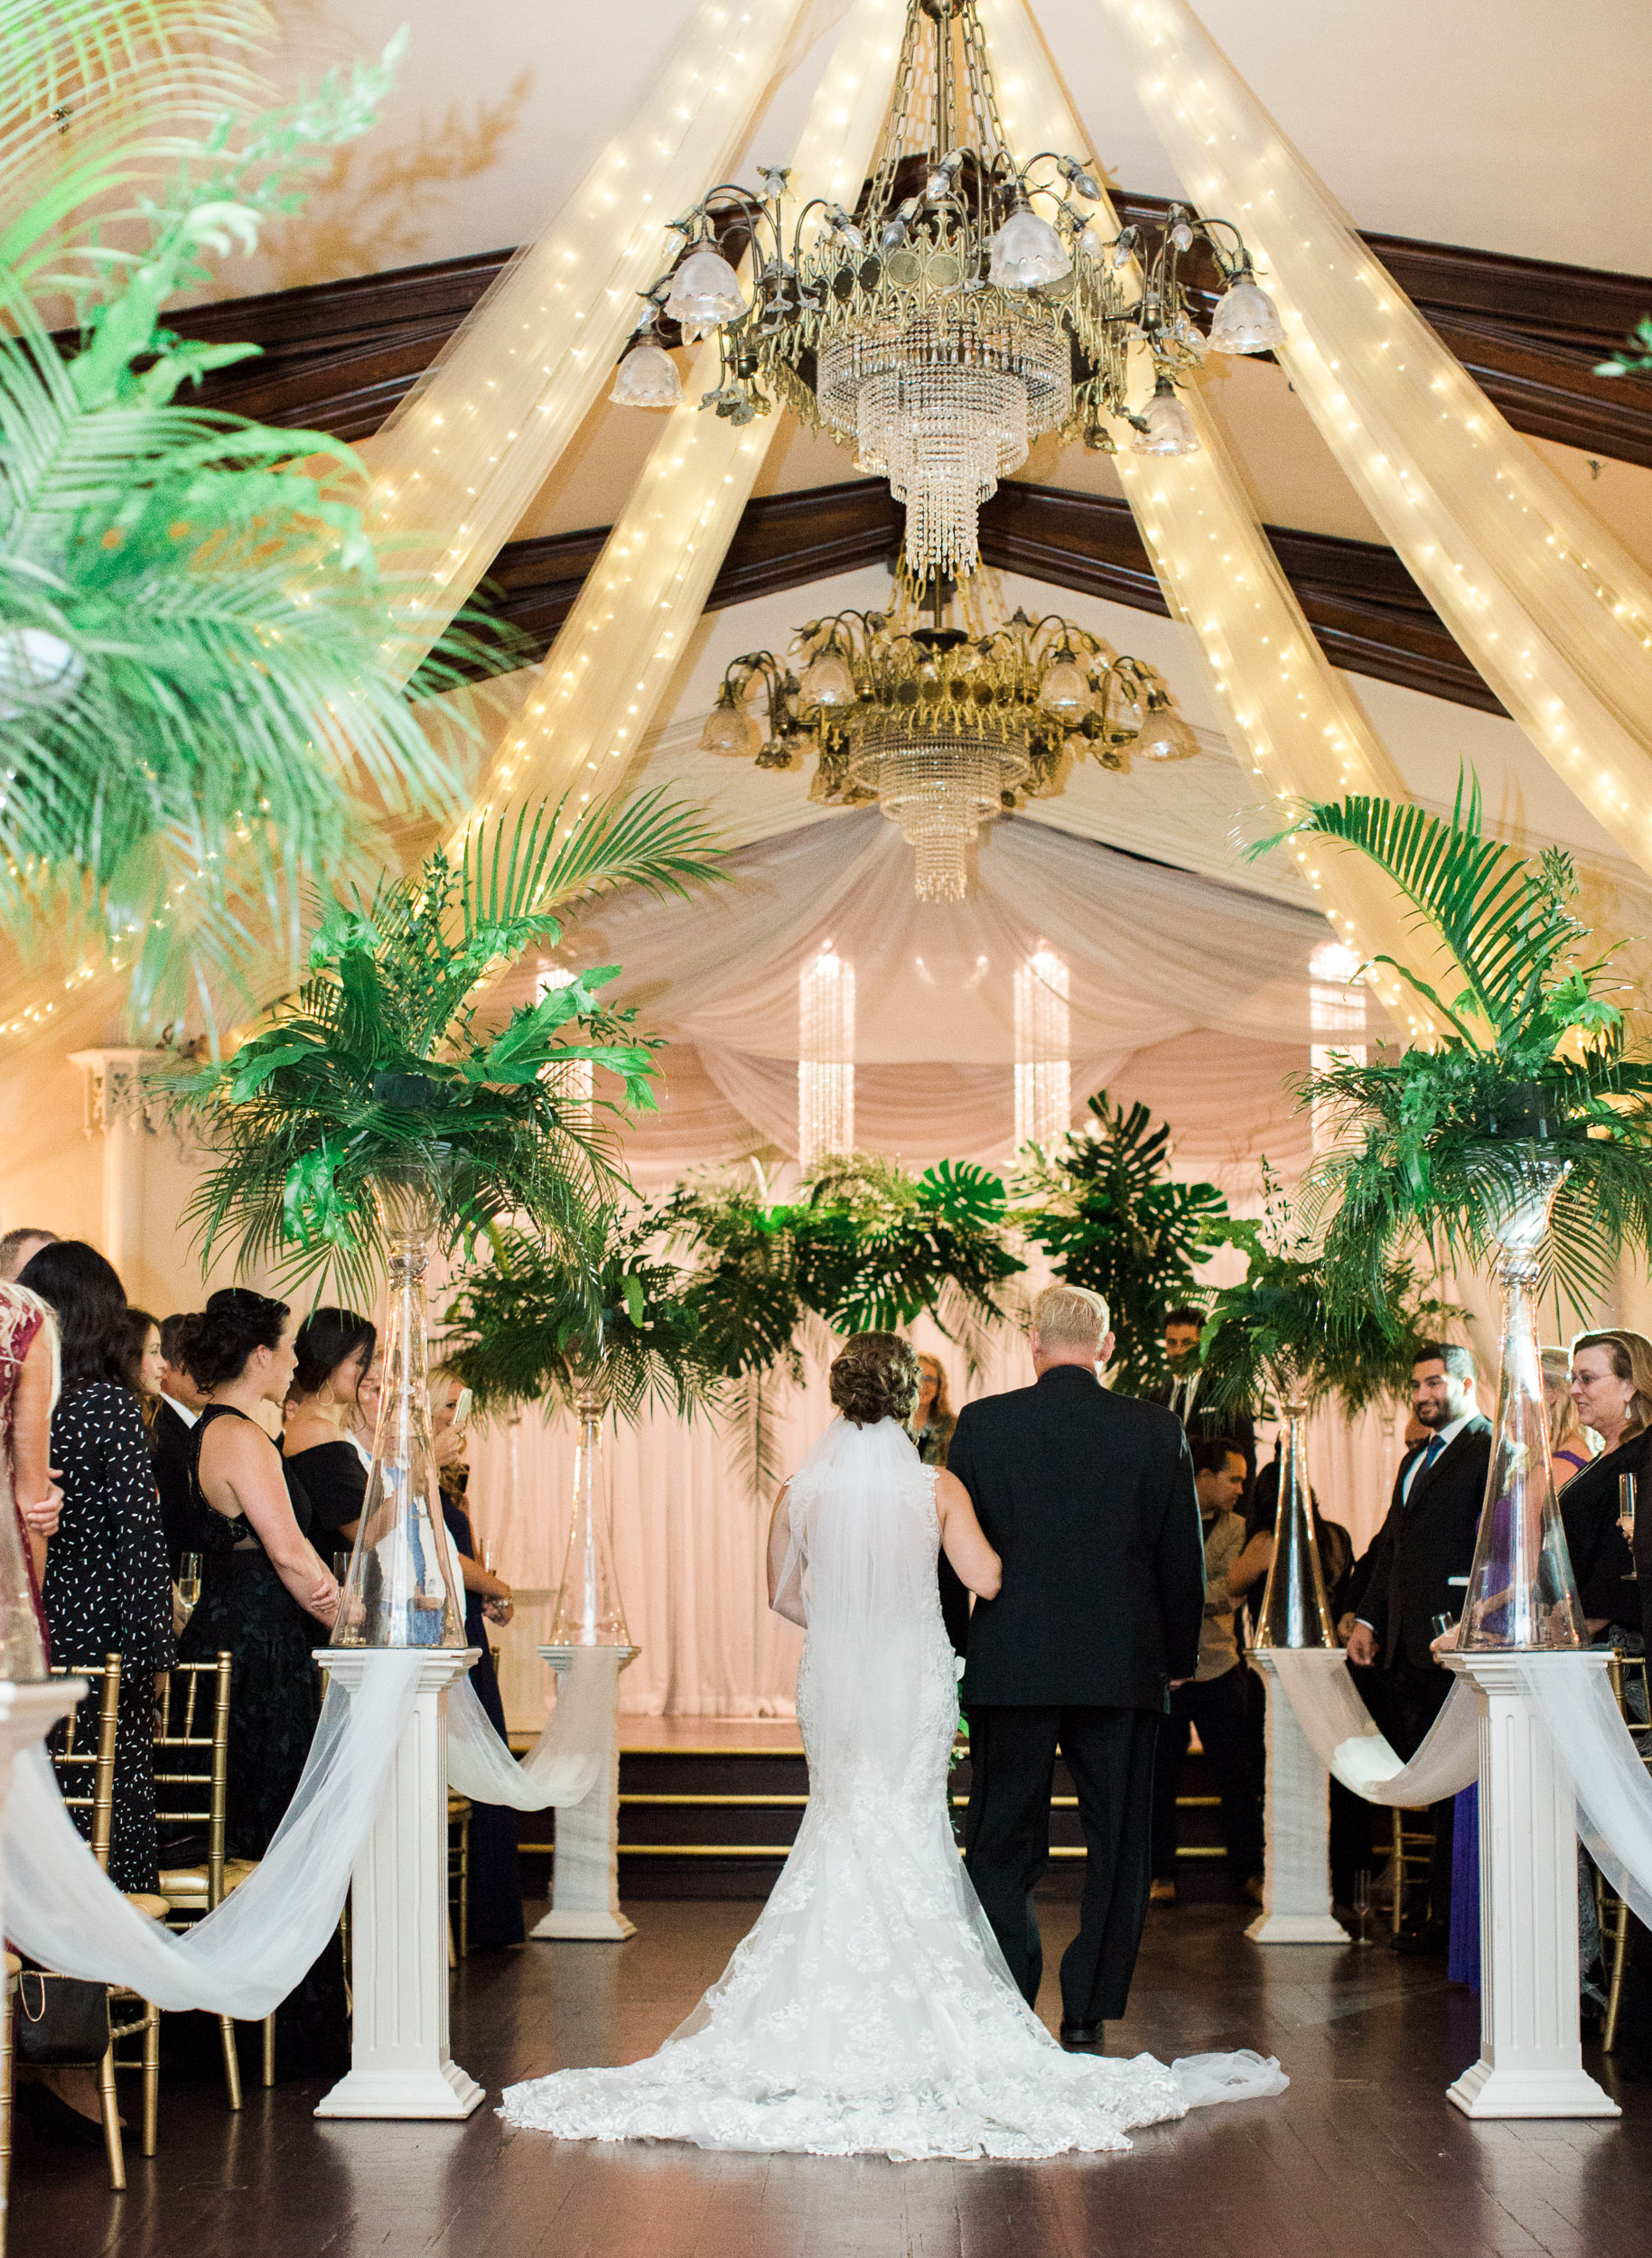 043destination_travel_photo&video_wedding_company_for_luxary_highend_weddings_and_elopements_in_LA_SF_HAWAII_Carribean_Santorini.jpg